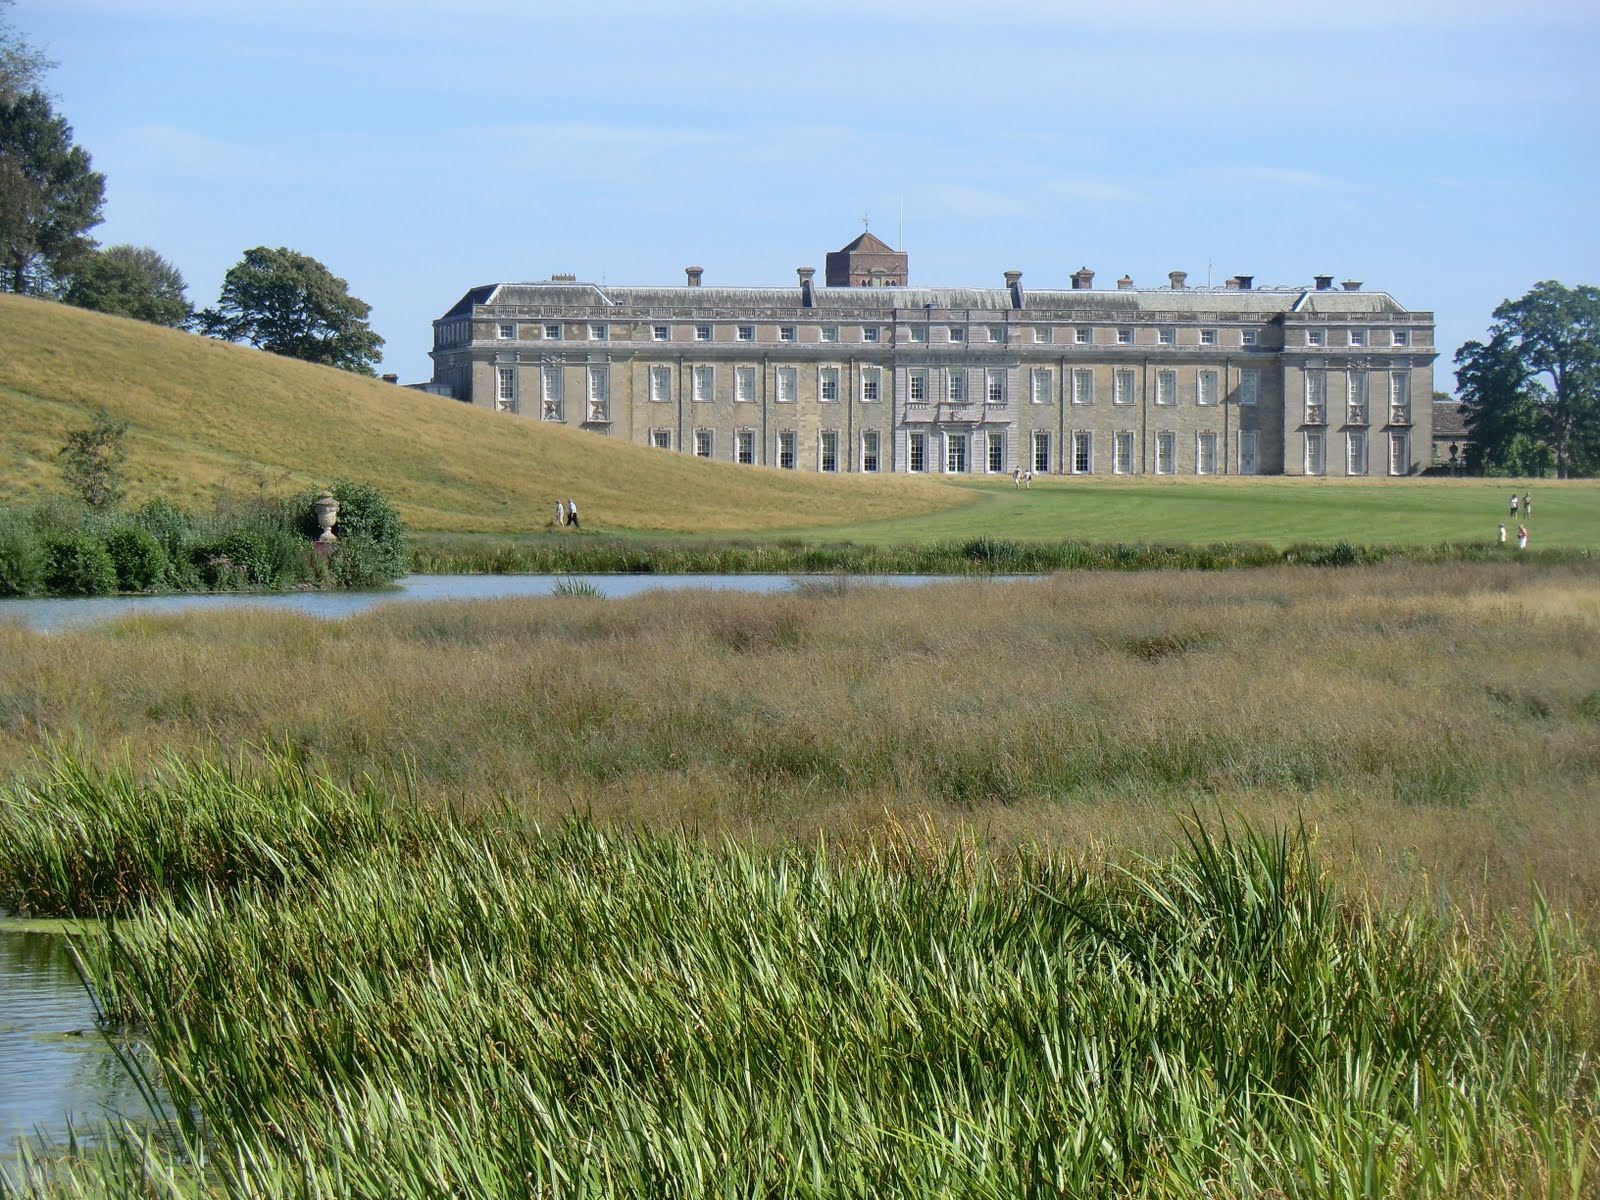 CIMG3997 Petworth House from Upper Pond